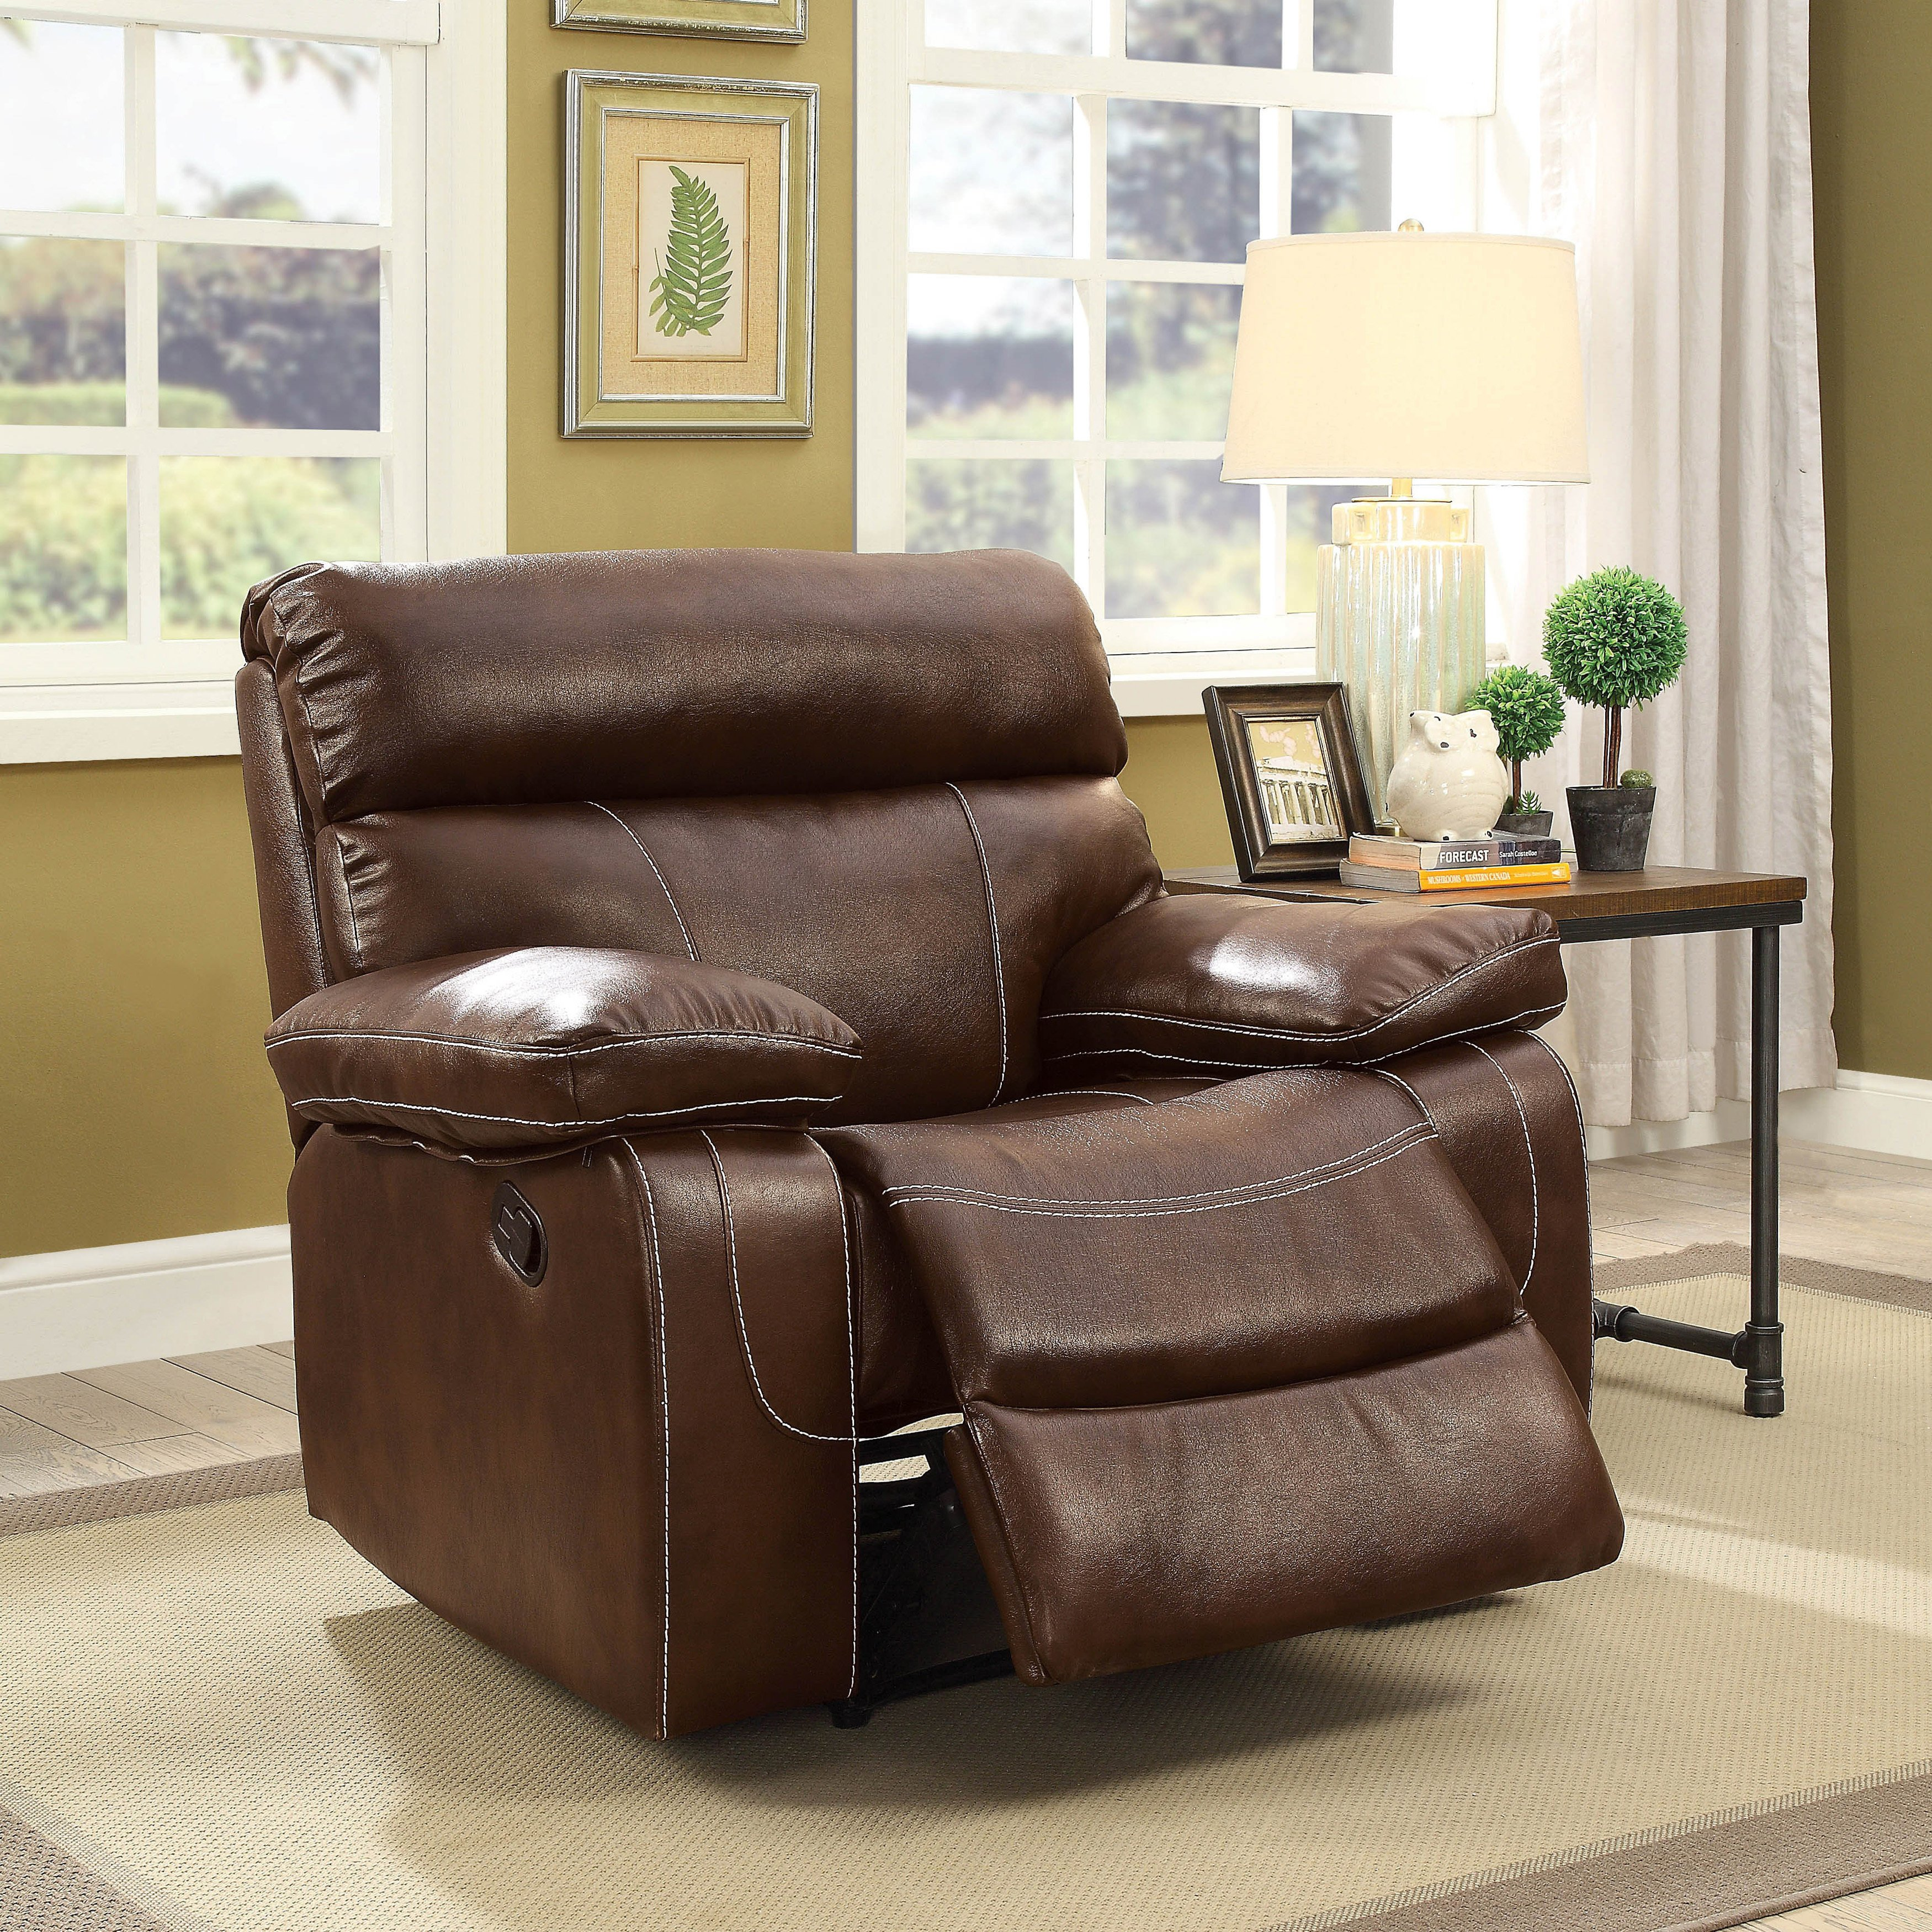 Furniture Of America Bowen Brown Leatherette Recliner Chair Faux